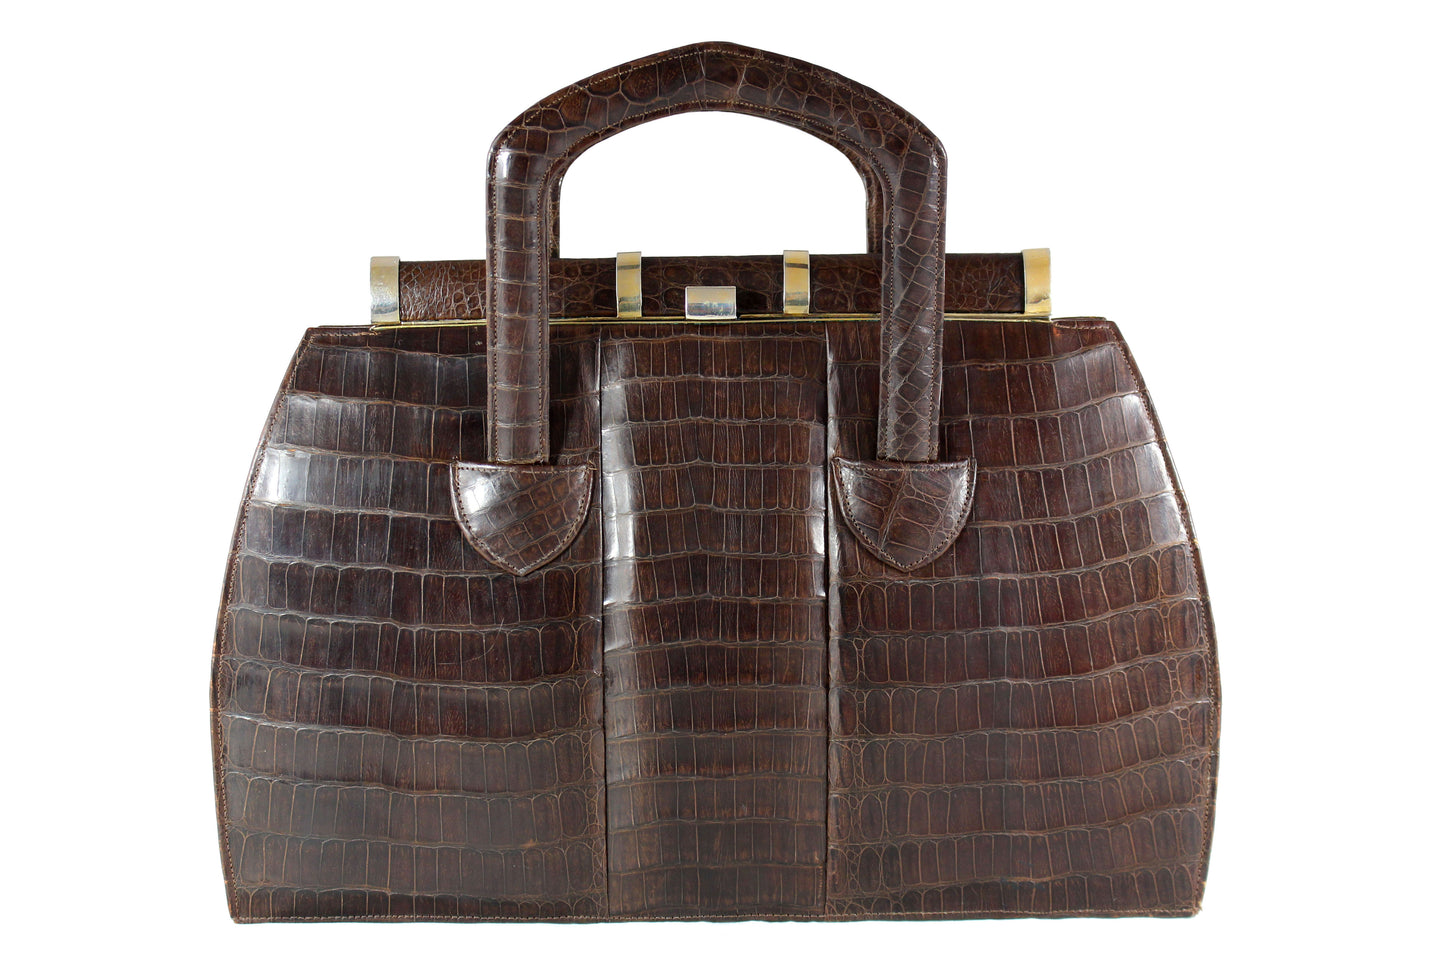 Art deco brown crocodile skin handbag with sliding handles